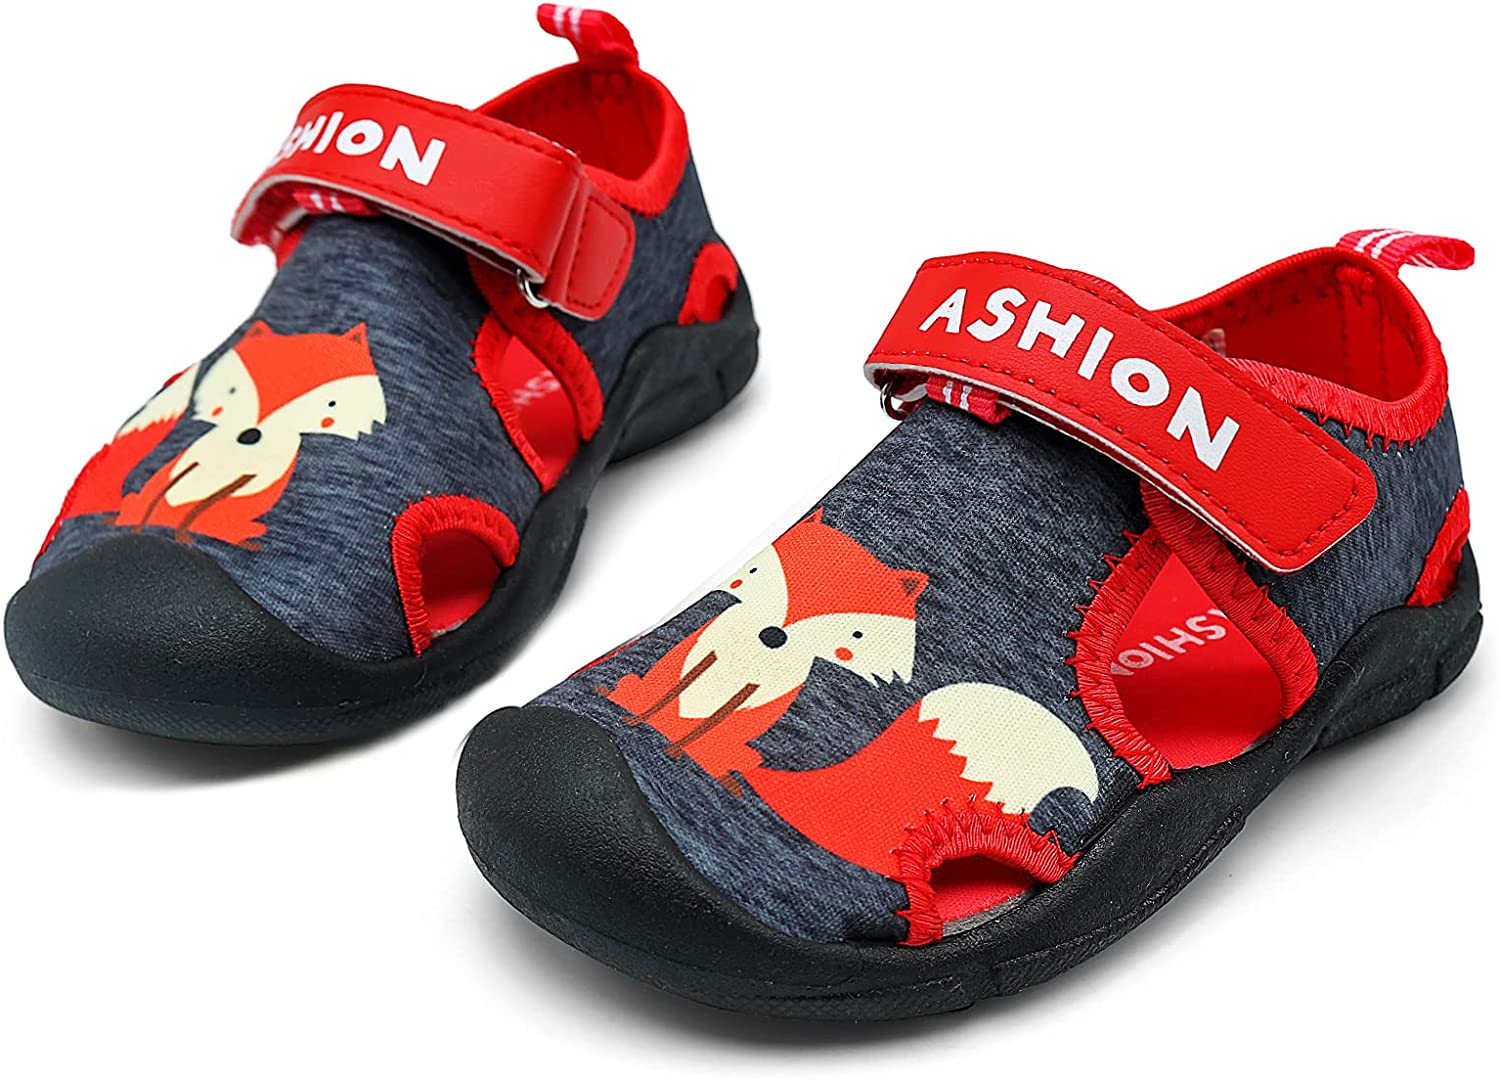 Boys Sandals Closed Toe Toddler Straps Kid for Today's only Two Max 74% OFF Girls